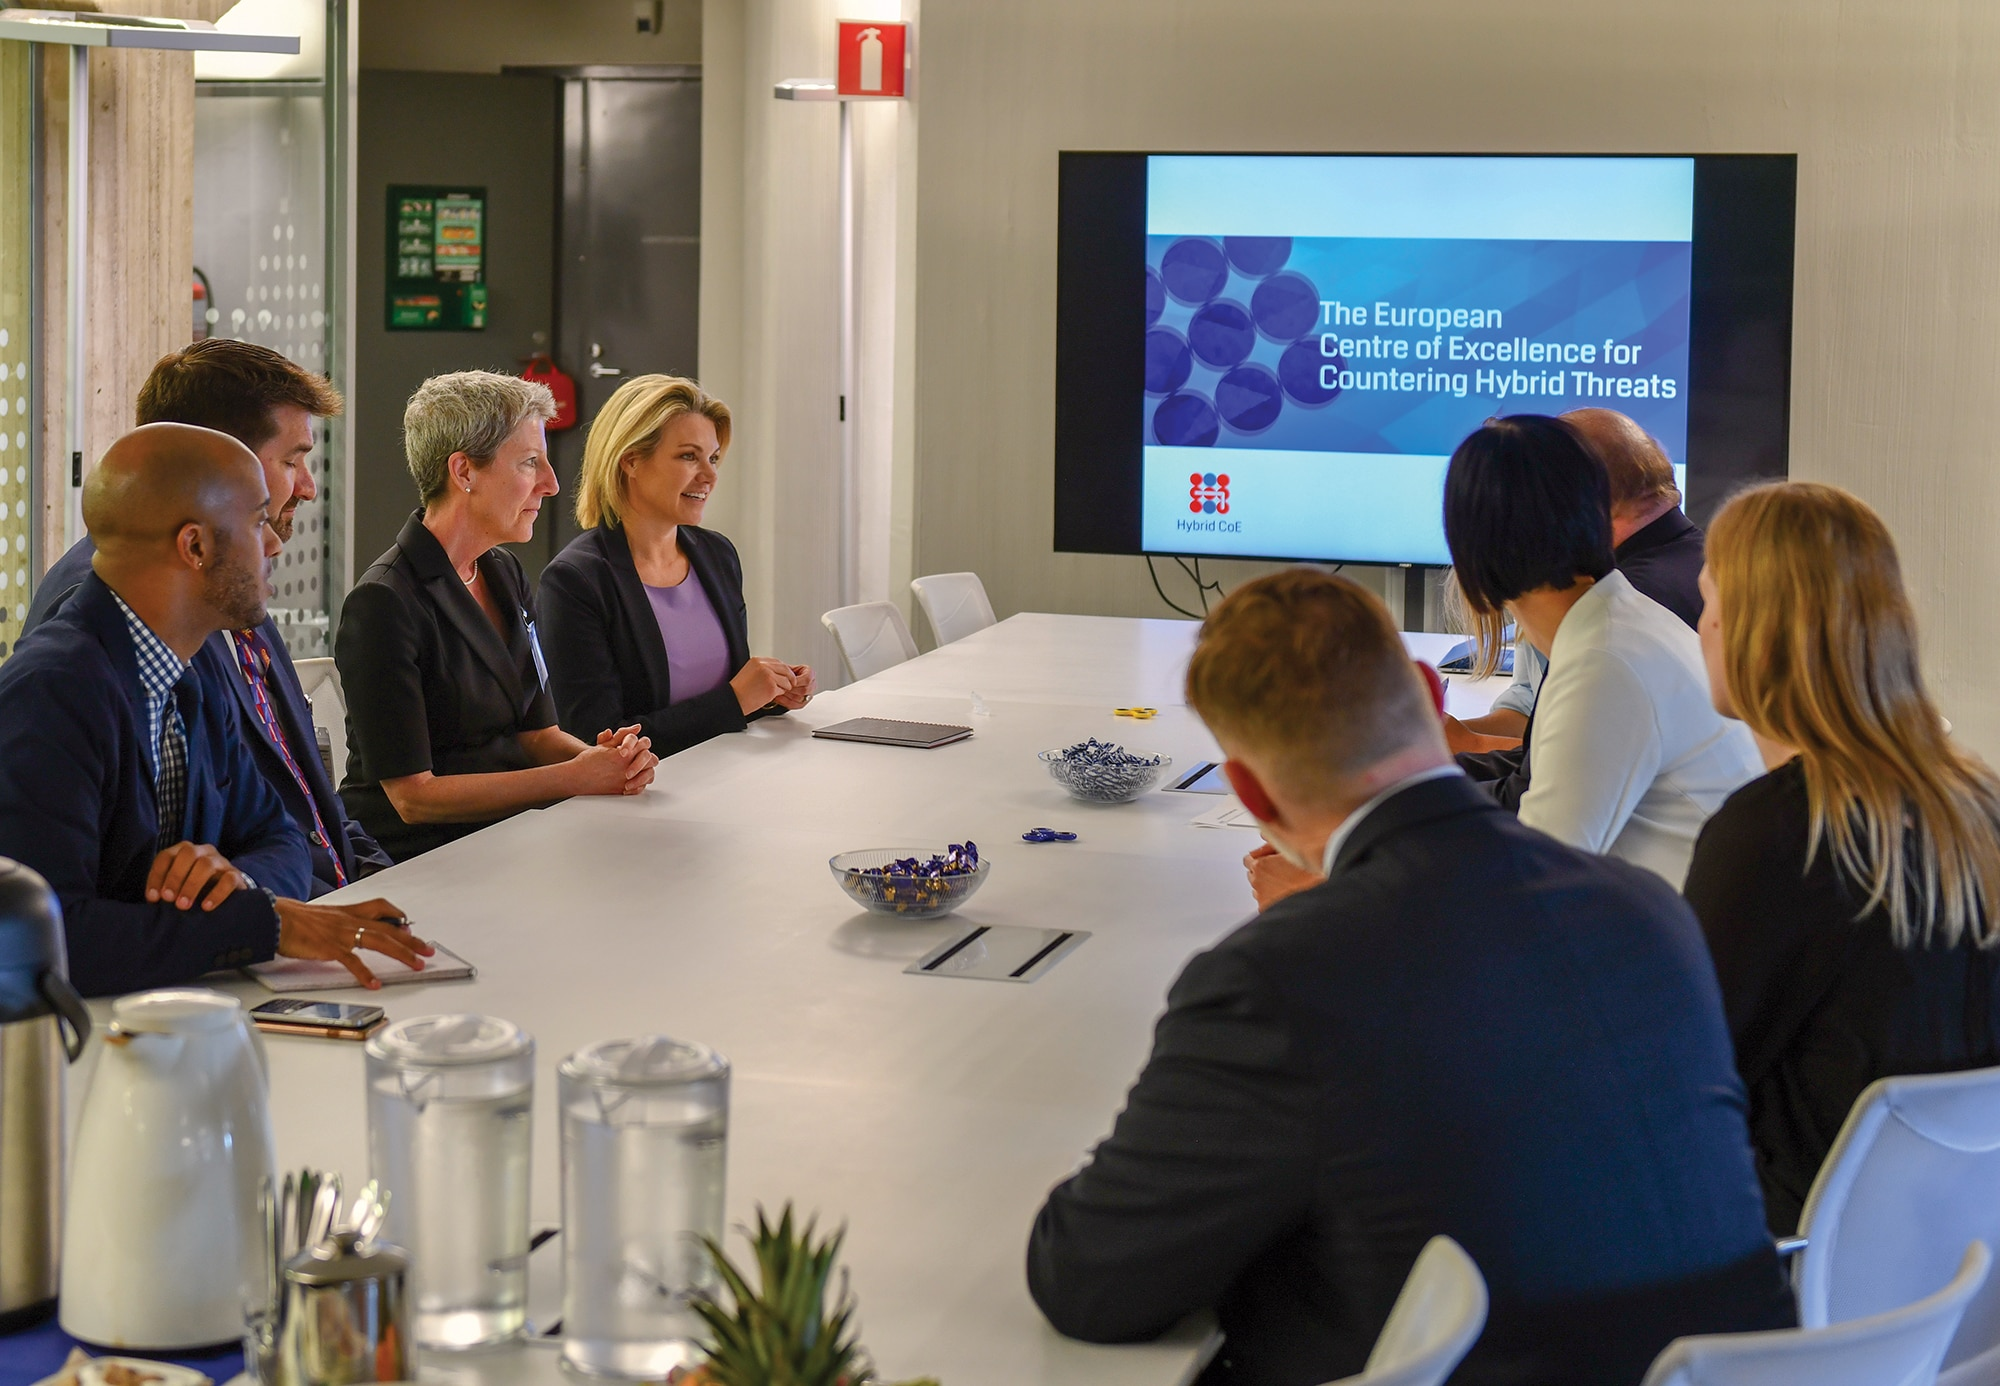 Photo showing Acting Under Secretary for Public Diplomacy and Public Affairs Heather Nauert visiting the European Centre of Excellence for Countering Hybrid Threats in Helsinki, Finland, July 16, 2018. [Department of State]